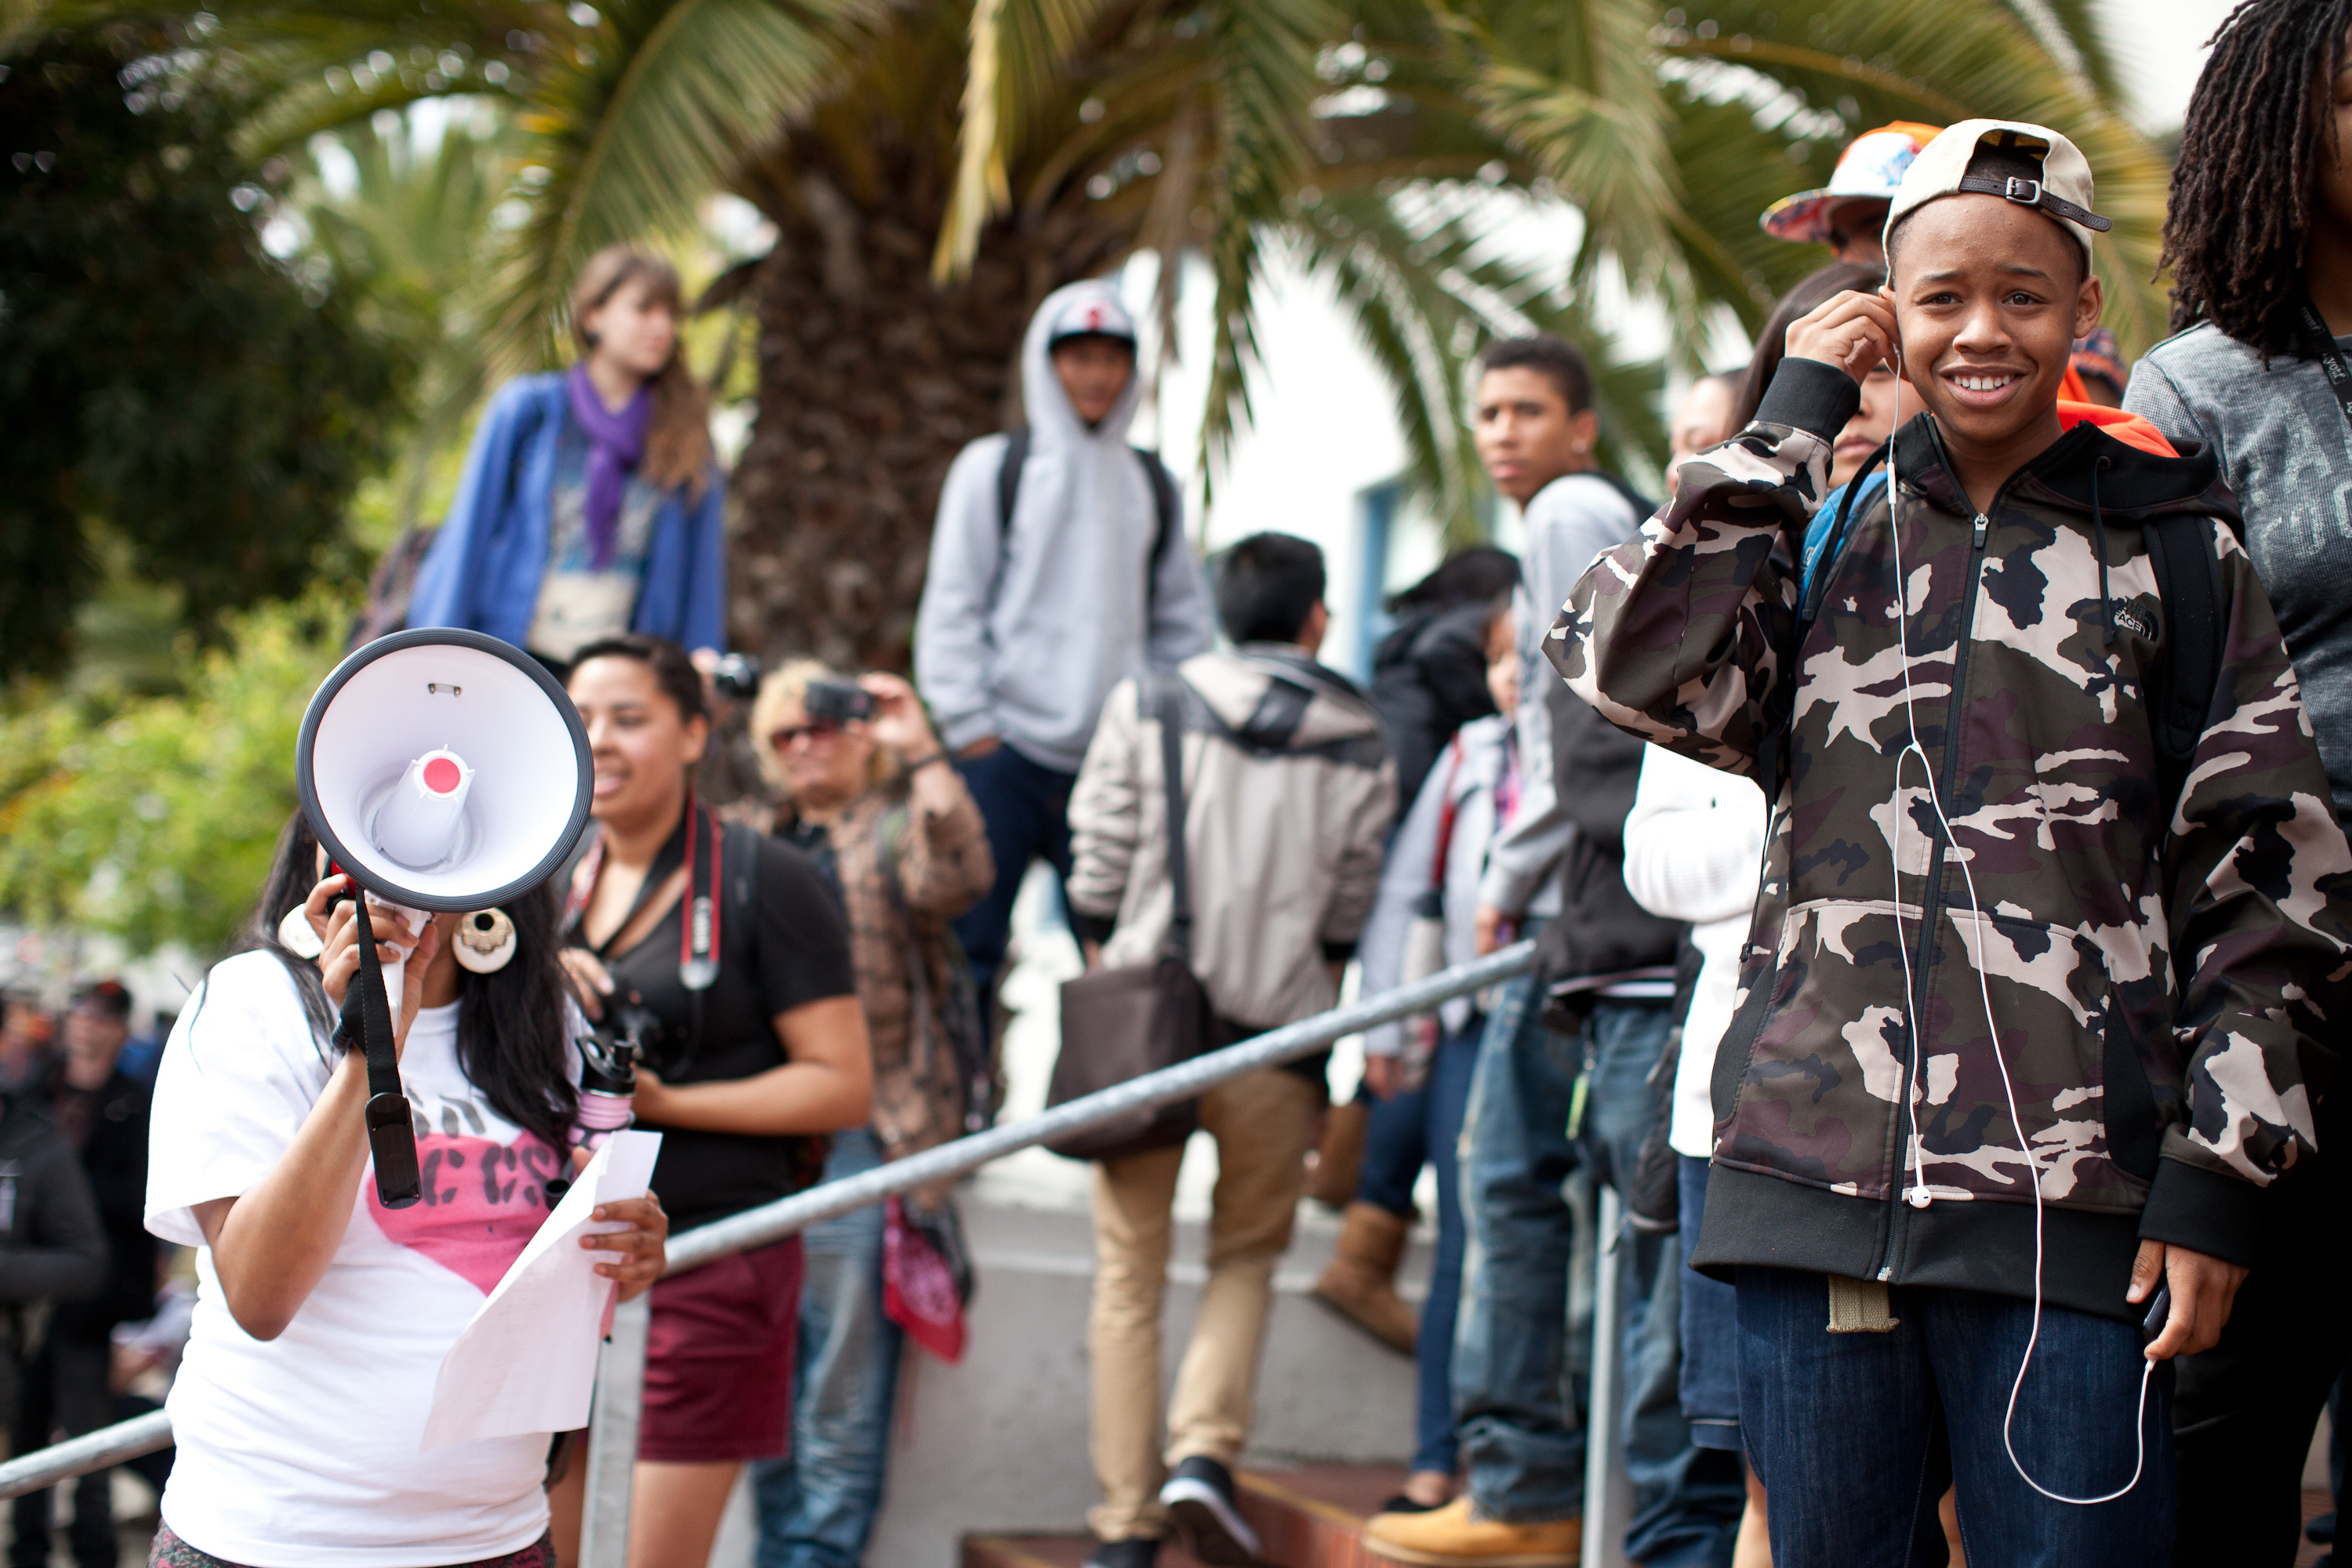 Students from City College campuses marched to Mission High school, where they stood on the sidewalk and encouraged Mission High school students to join them on their march to city hall. Here Rashon Sturdivant, a City College student uses a bullhorn to explain to high school students that their future is at risk, students on the steps are contemplating joining the march and several do. (Deborah Svoboda/KQED)